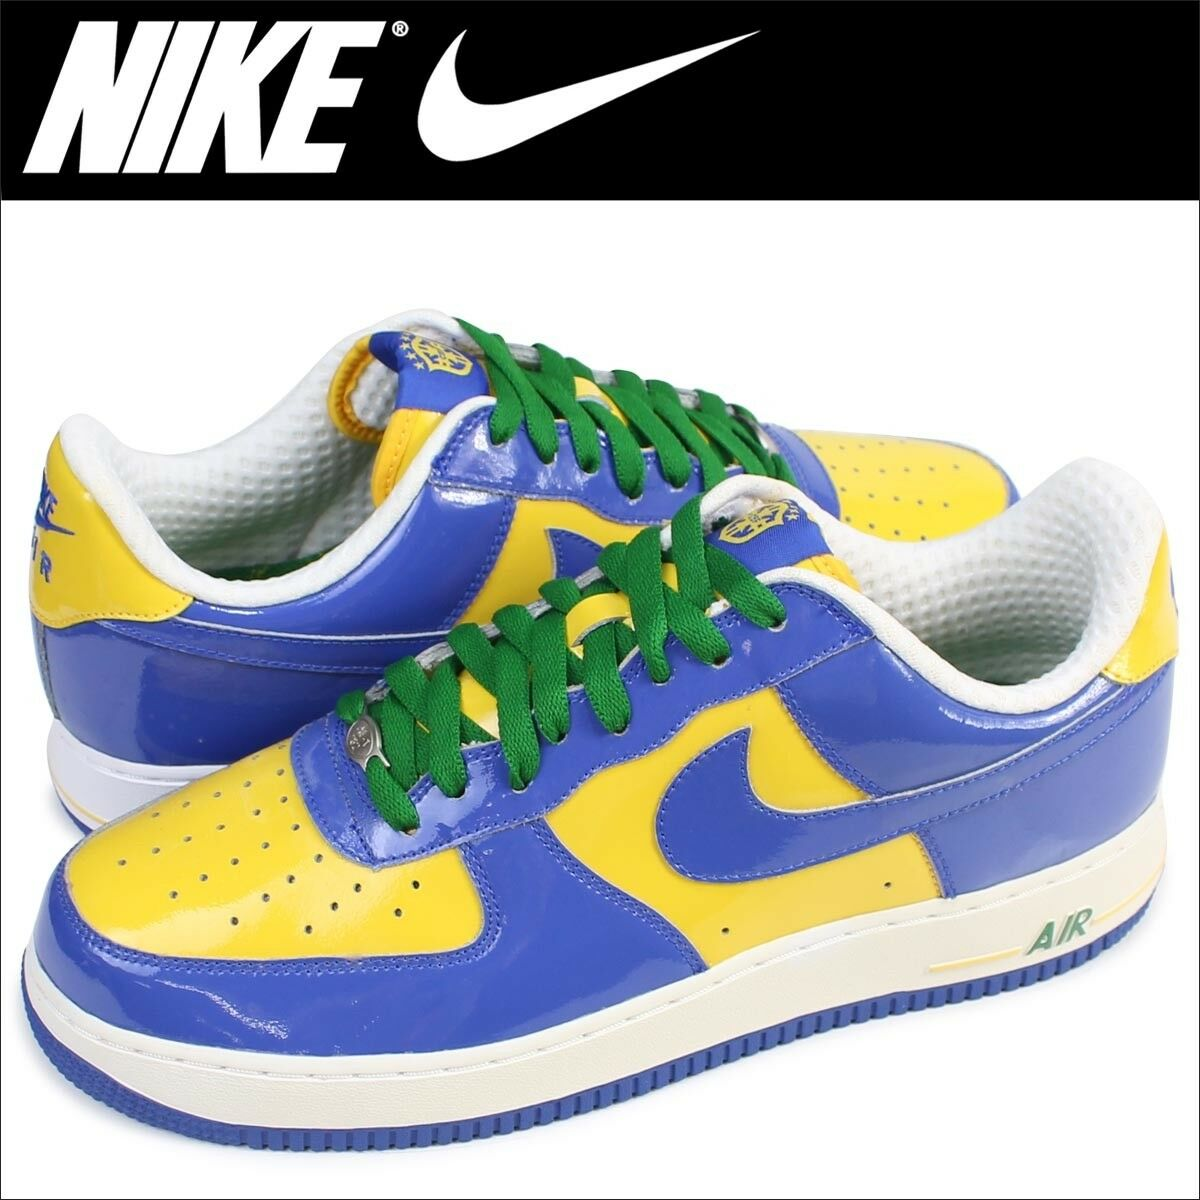 NIKE AIR FORCE 1 PRM BRAZIL WORLD CUP Neymar bluee Yellow Green White Men 9 shoes